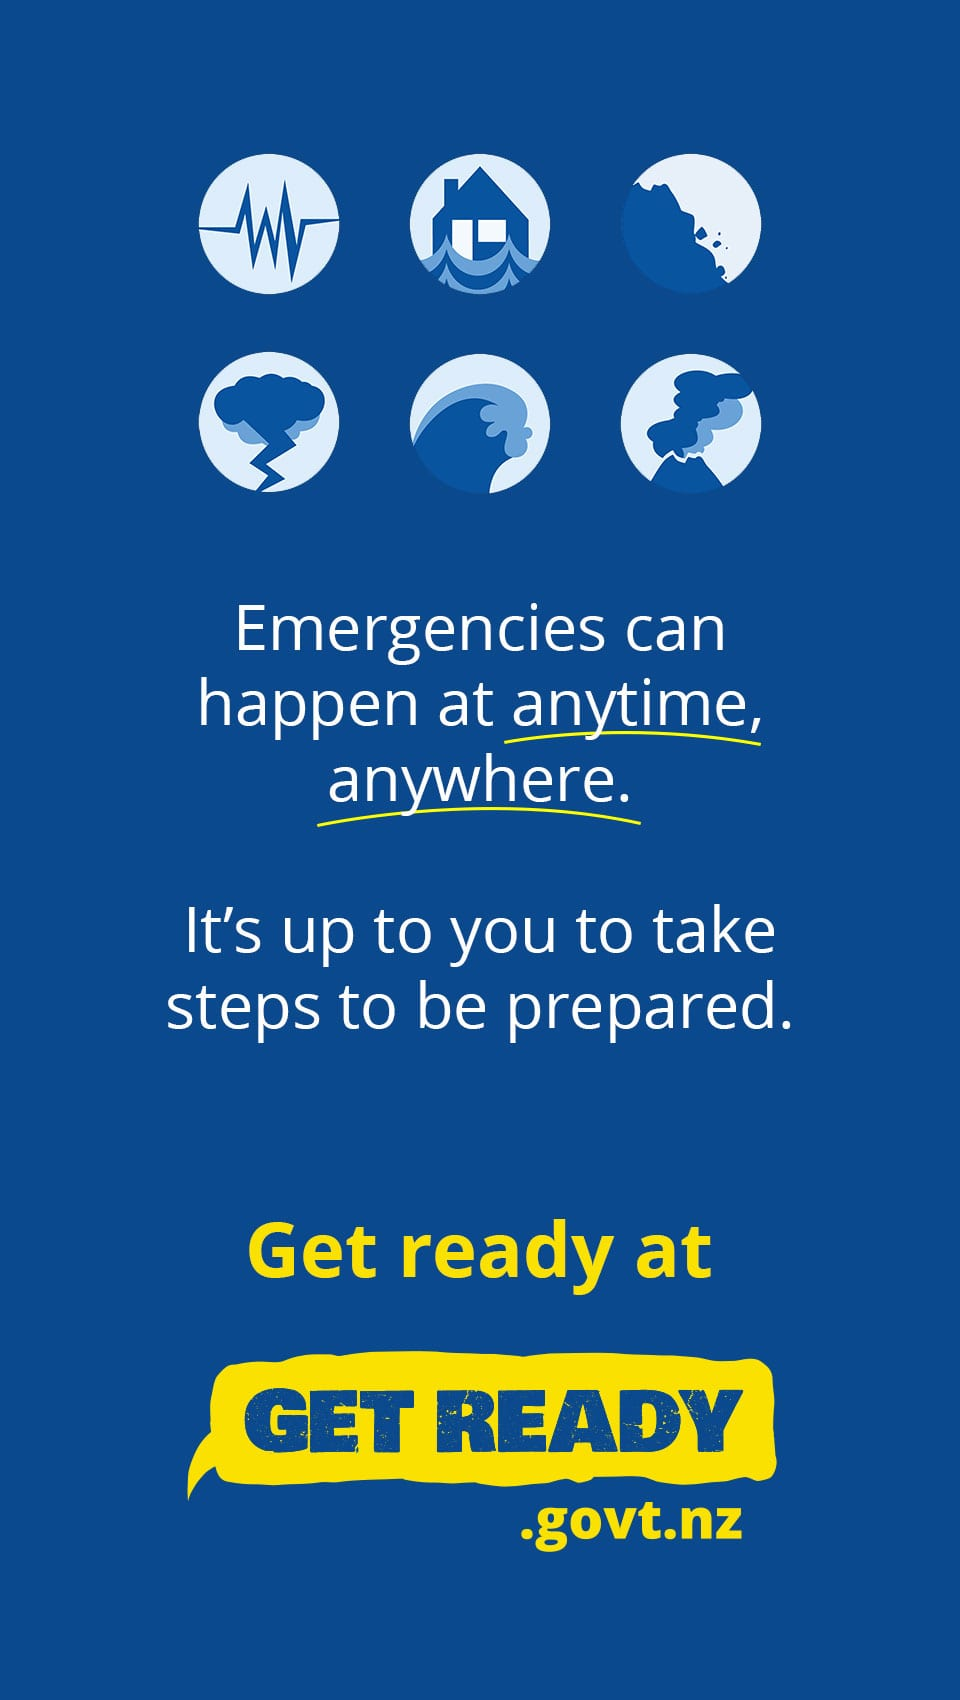 emergencies can happen at anytime, anywhere